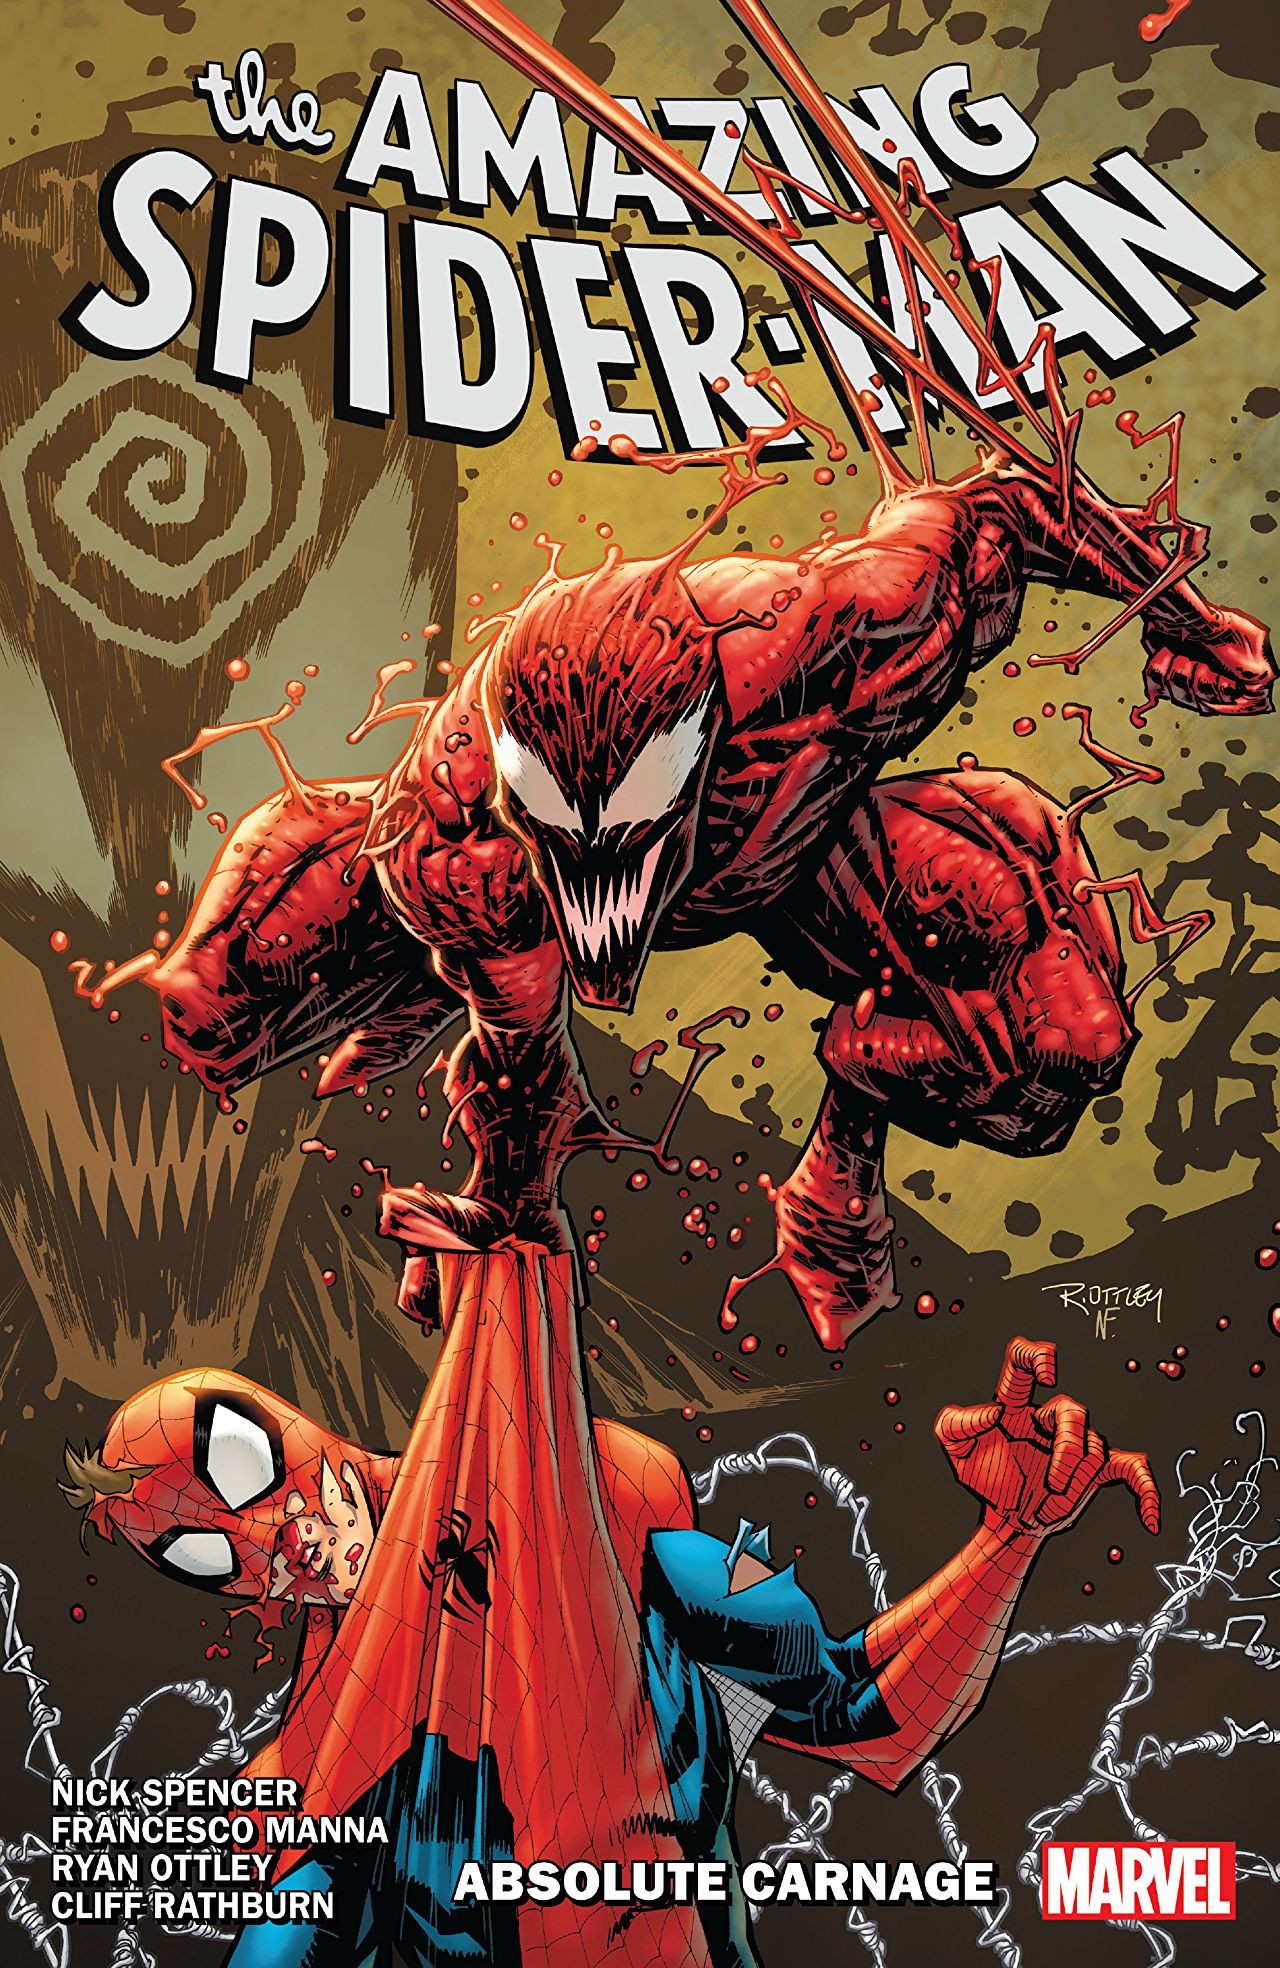 Amazing Spider-Man by Nick Spencer Vol 1 6: Absolute Carnage